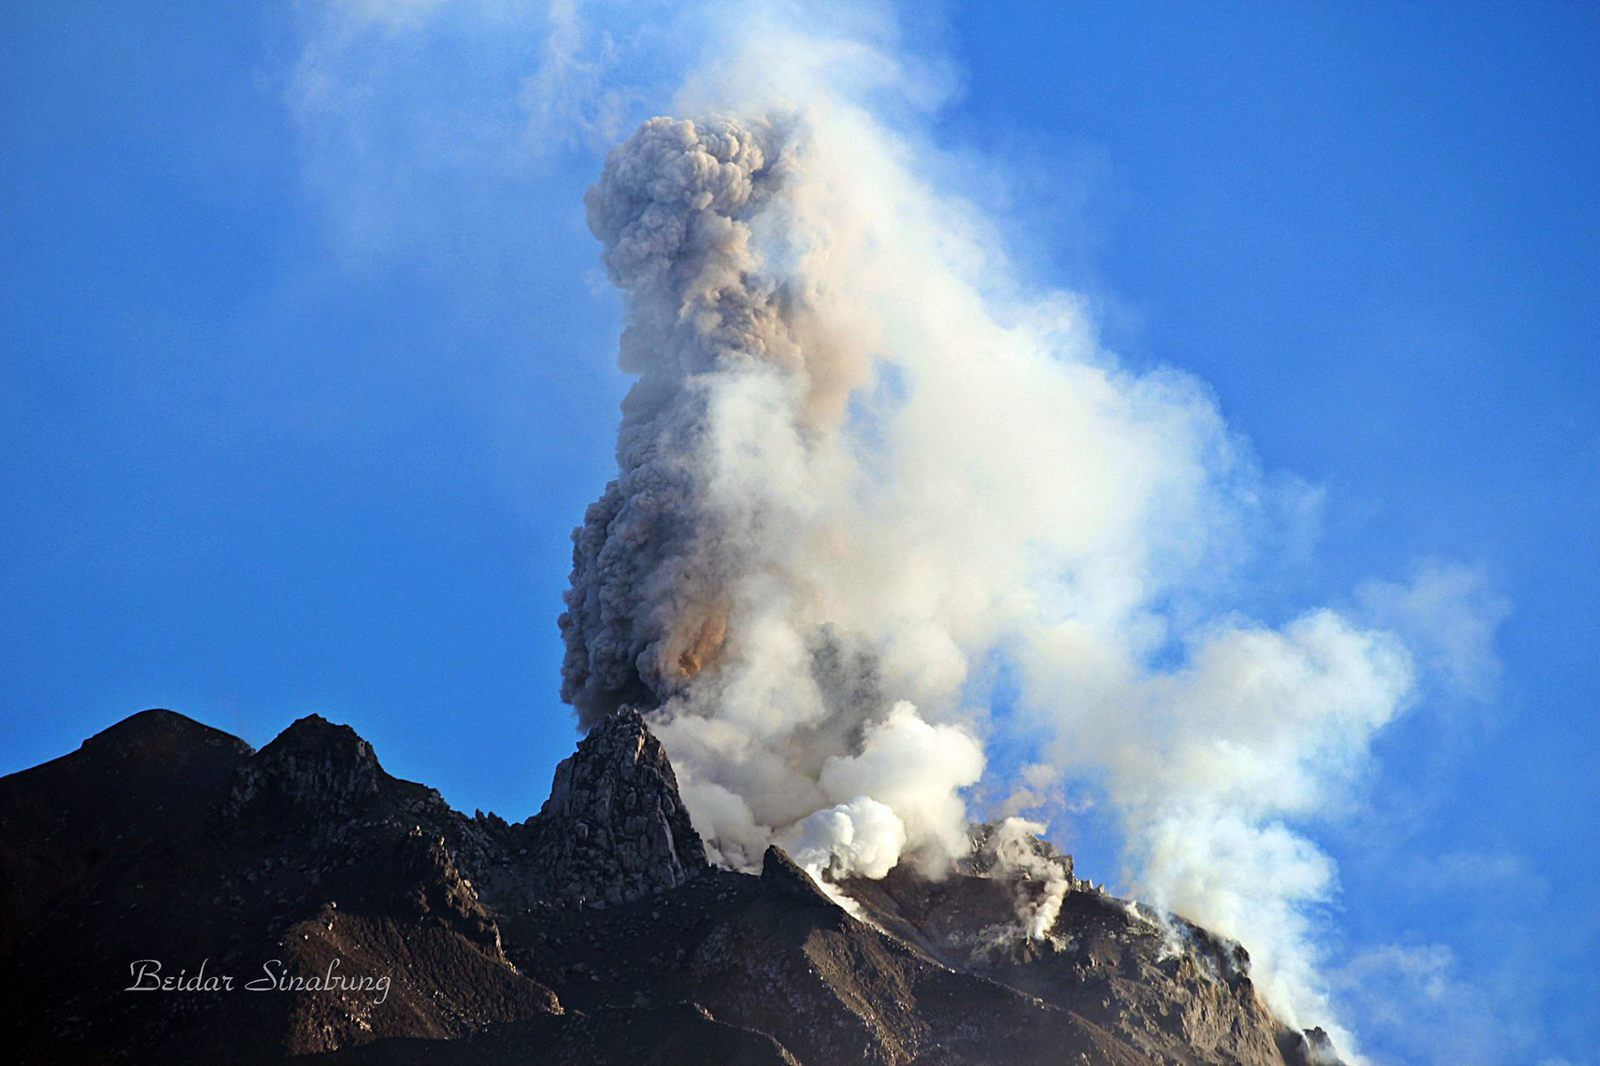 Sinabung - 26.03.2017 / 7:29 local -photo Ffirdaus Surbakti / Beidar Sinabung